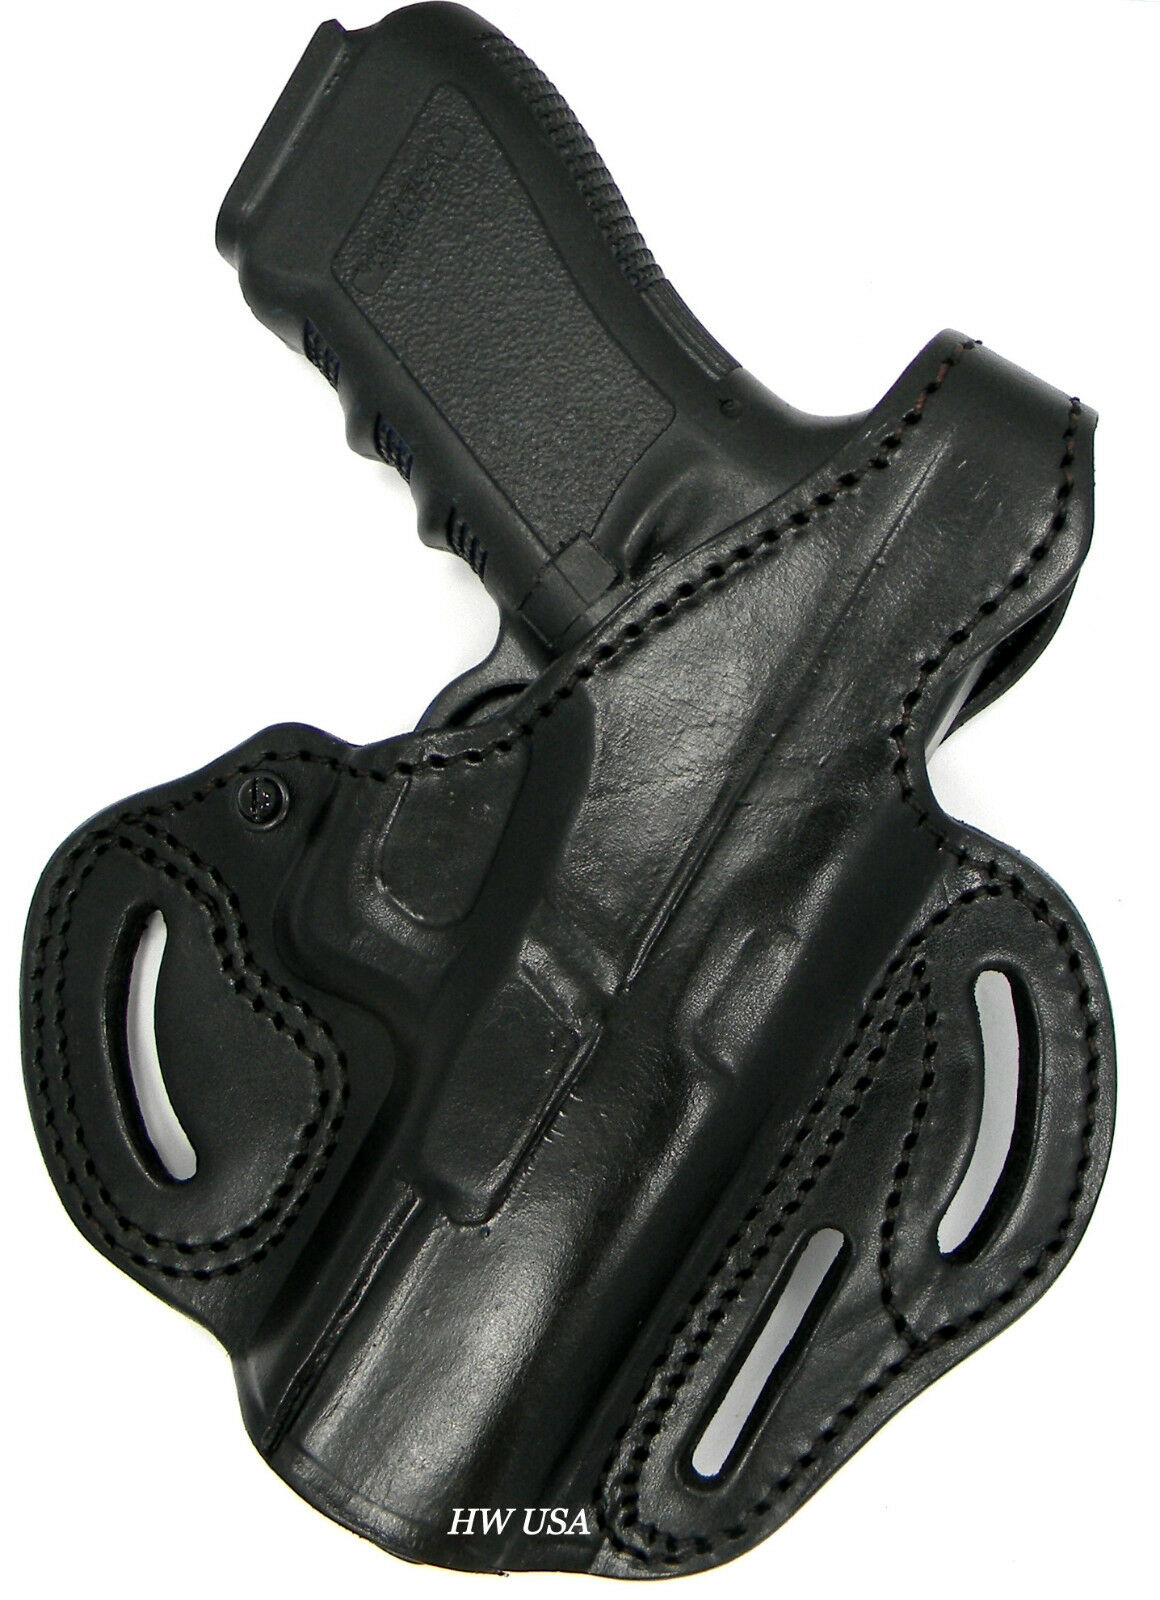 TAGUA PREMIUM RH OWB 2-Way Thumb Break Belt Holster BLACK Leather - Choose Gun